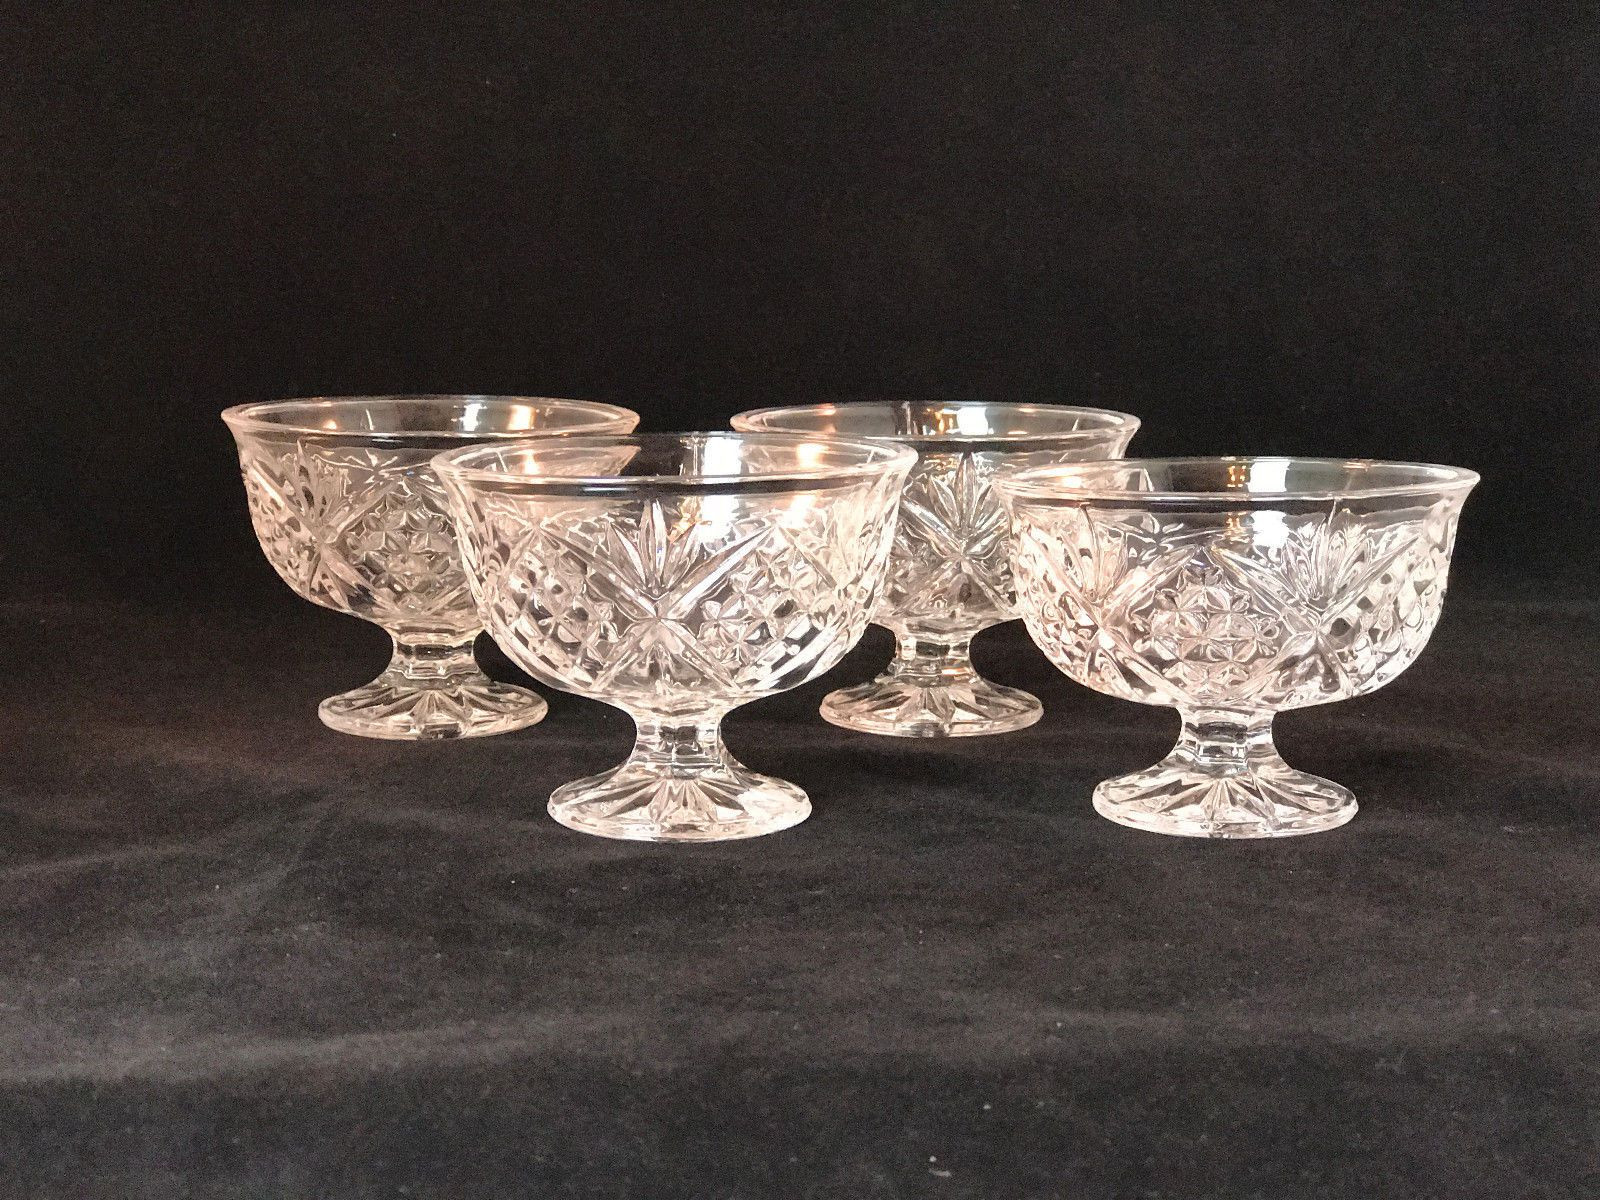 large footed crystal vase of tosimplyshop dublin crystal set 4 footed ice cream dessert cups intended for tosimplyshop dublin crystal set 4 footed ice cream dessert cups shannon crystal godinger new homedecor crystal home